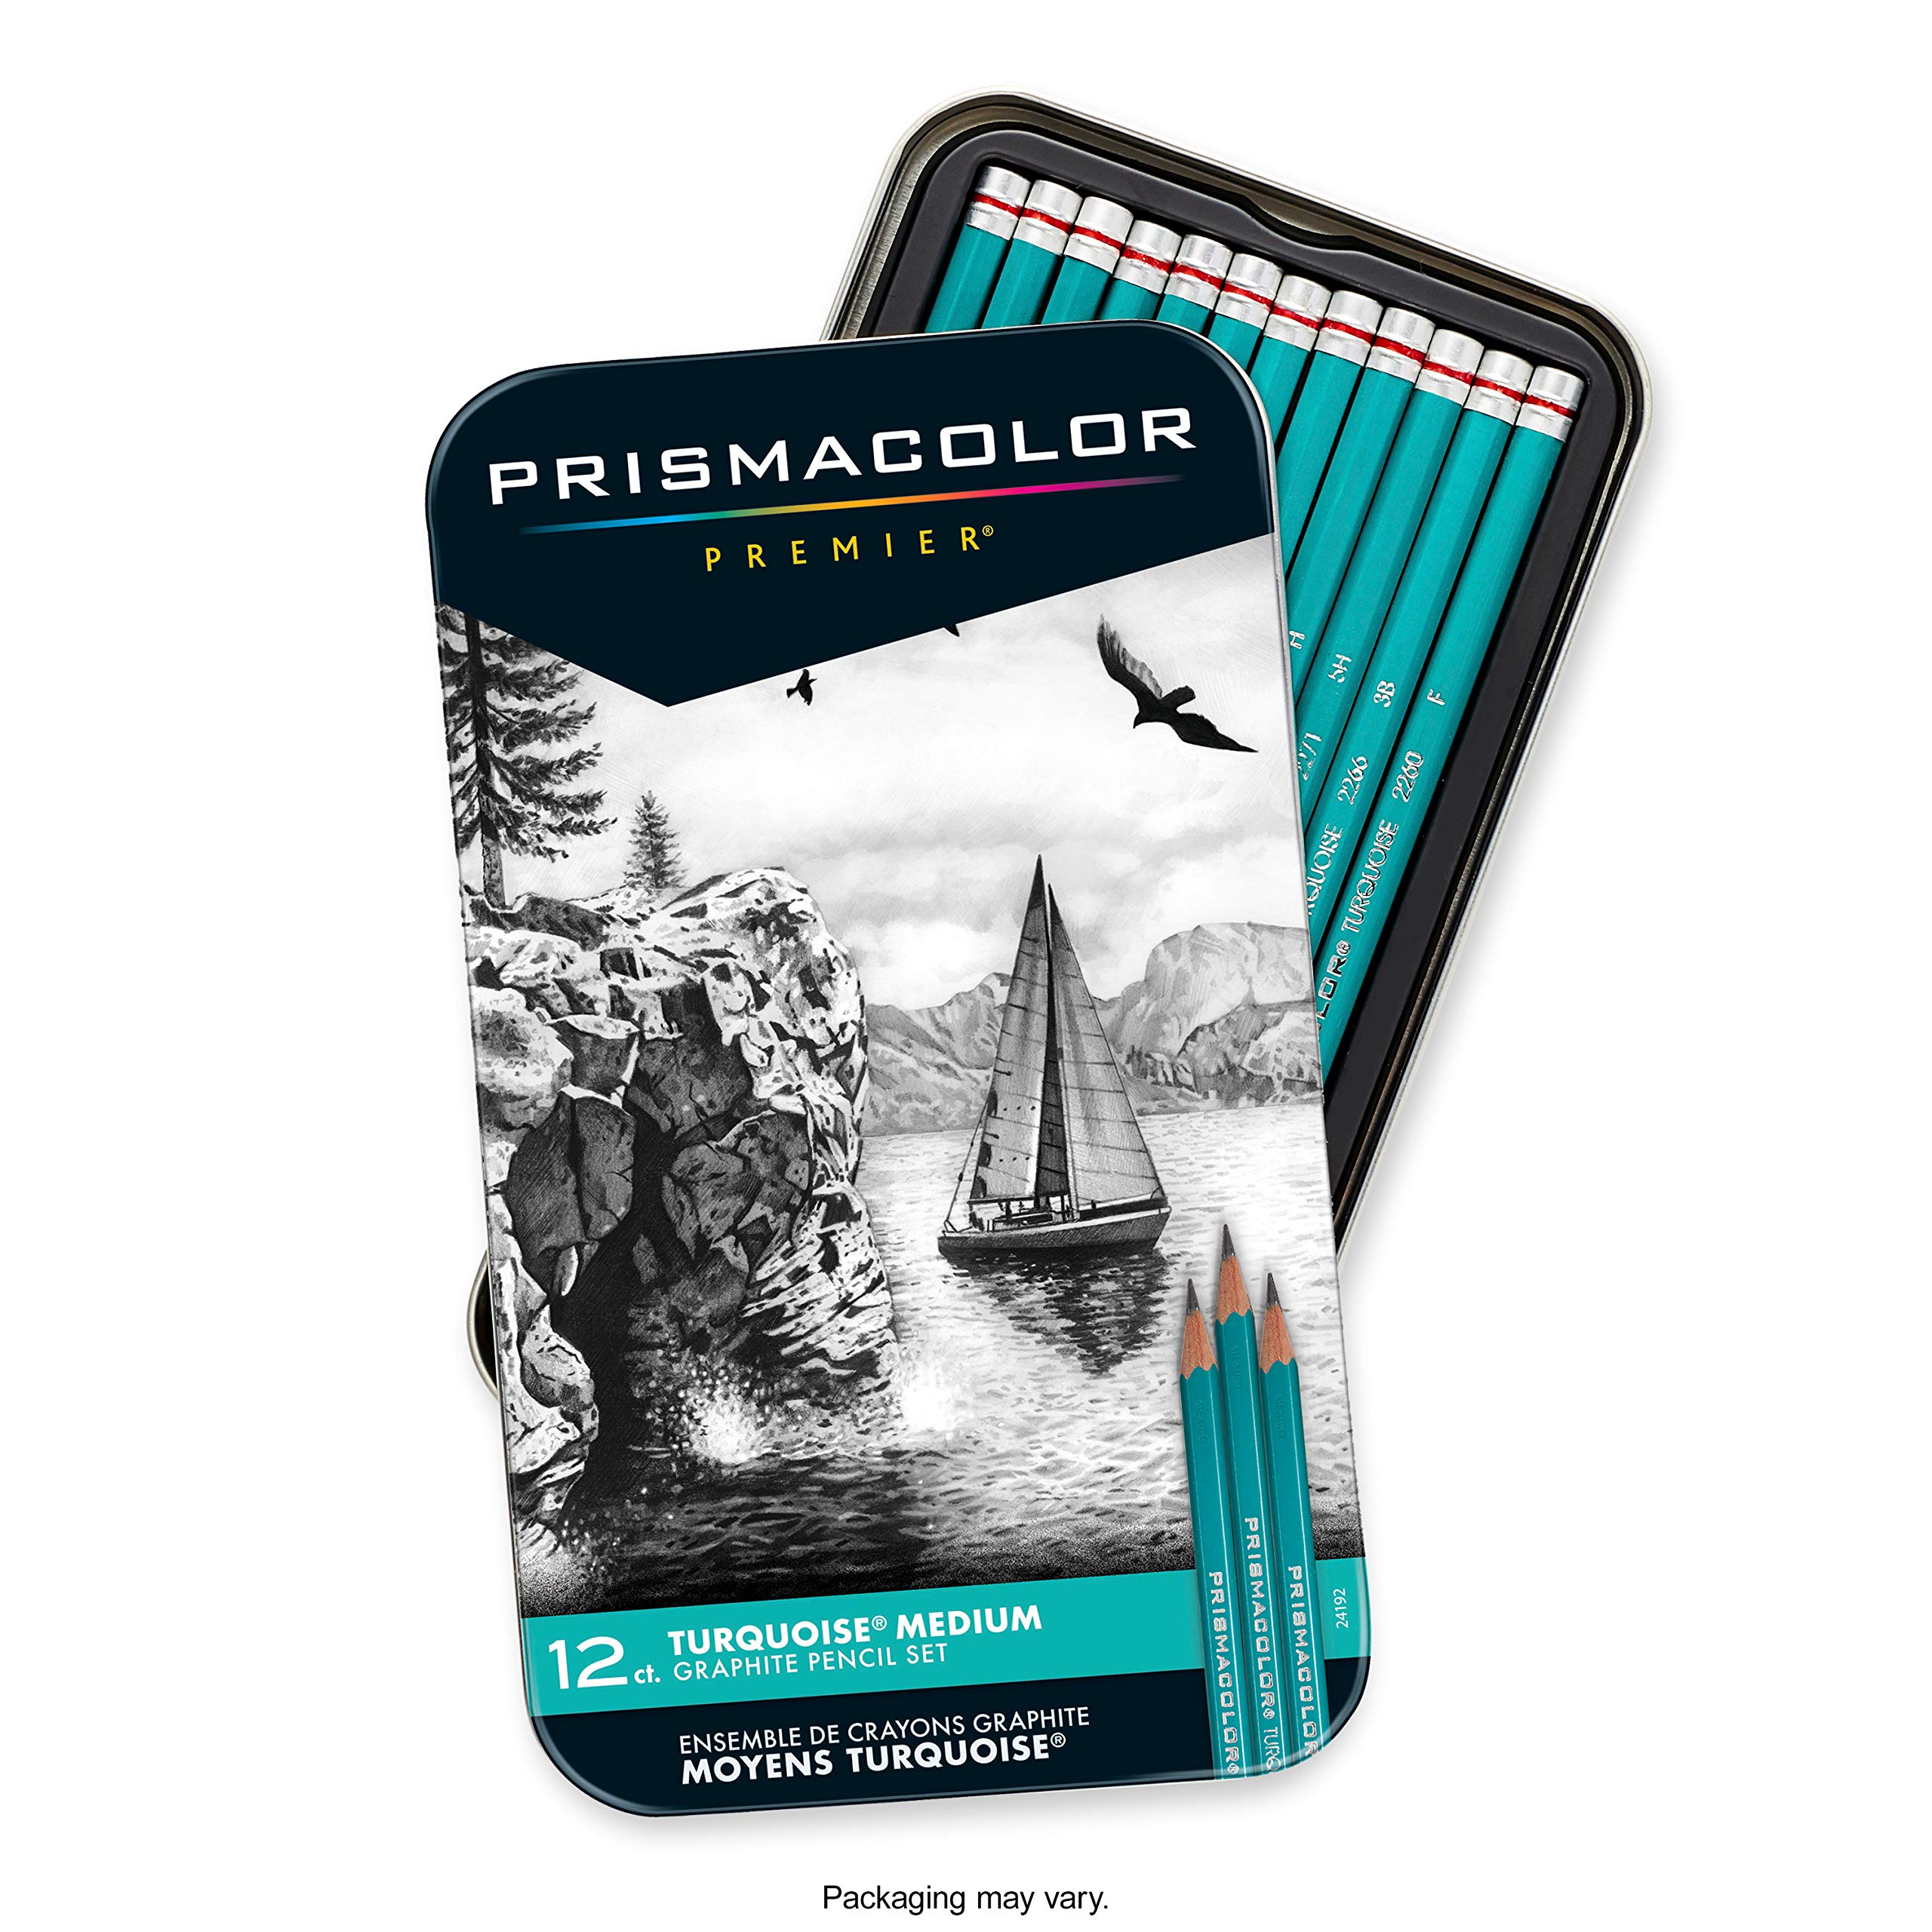 Prismacolor 24192 Premier Turquoise Graphite Sketching Pencils, Medium Leads, 12-Count by PRISMACOLOR